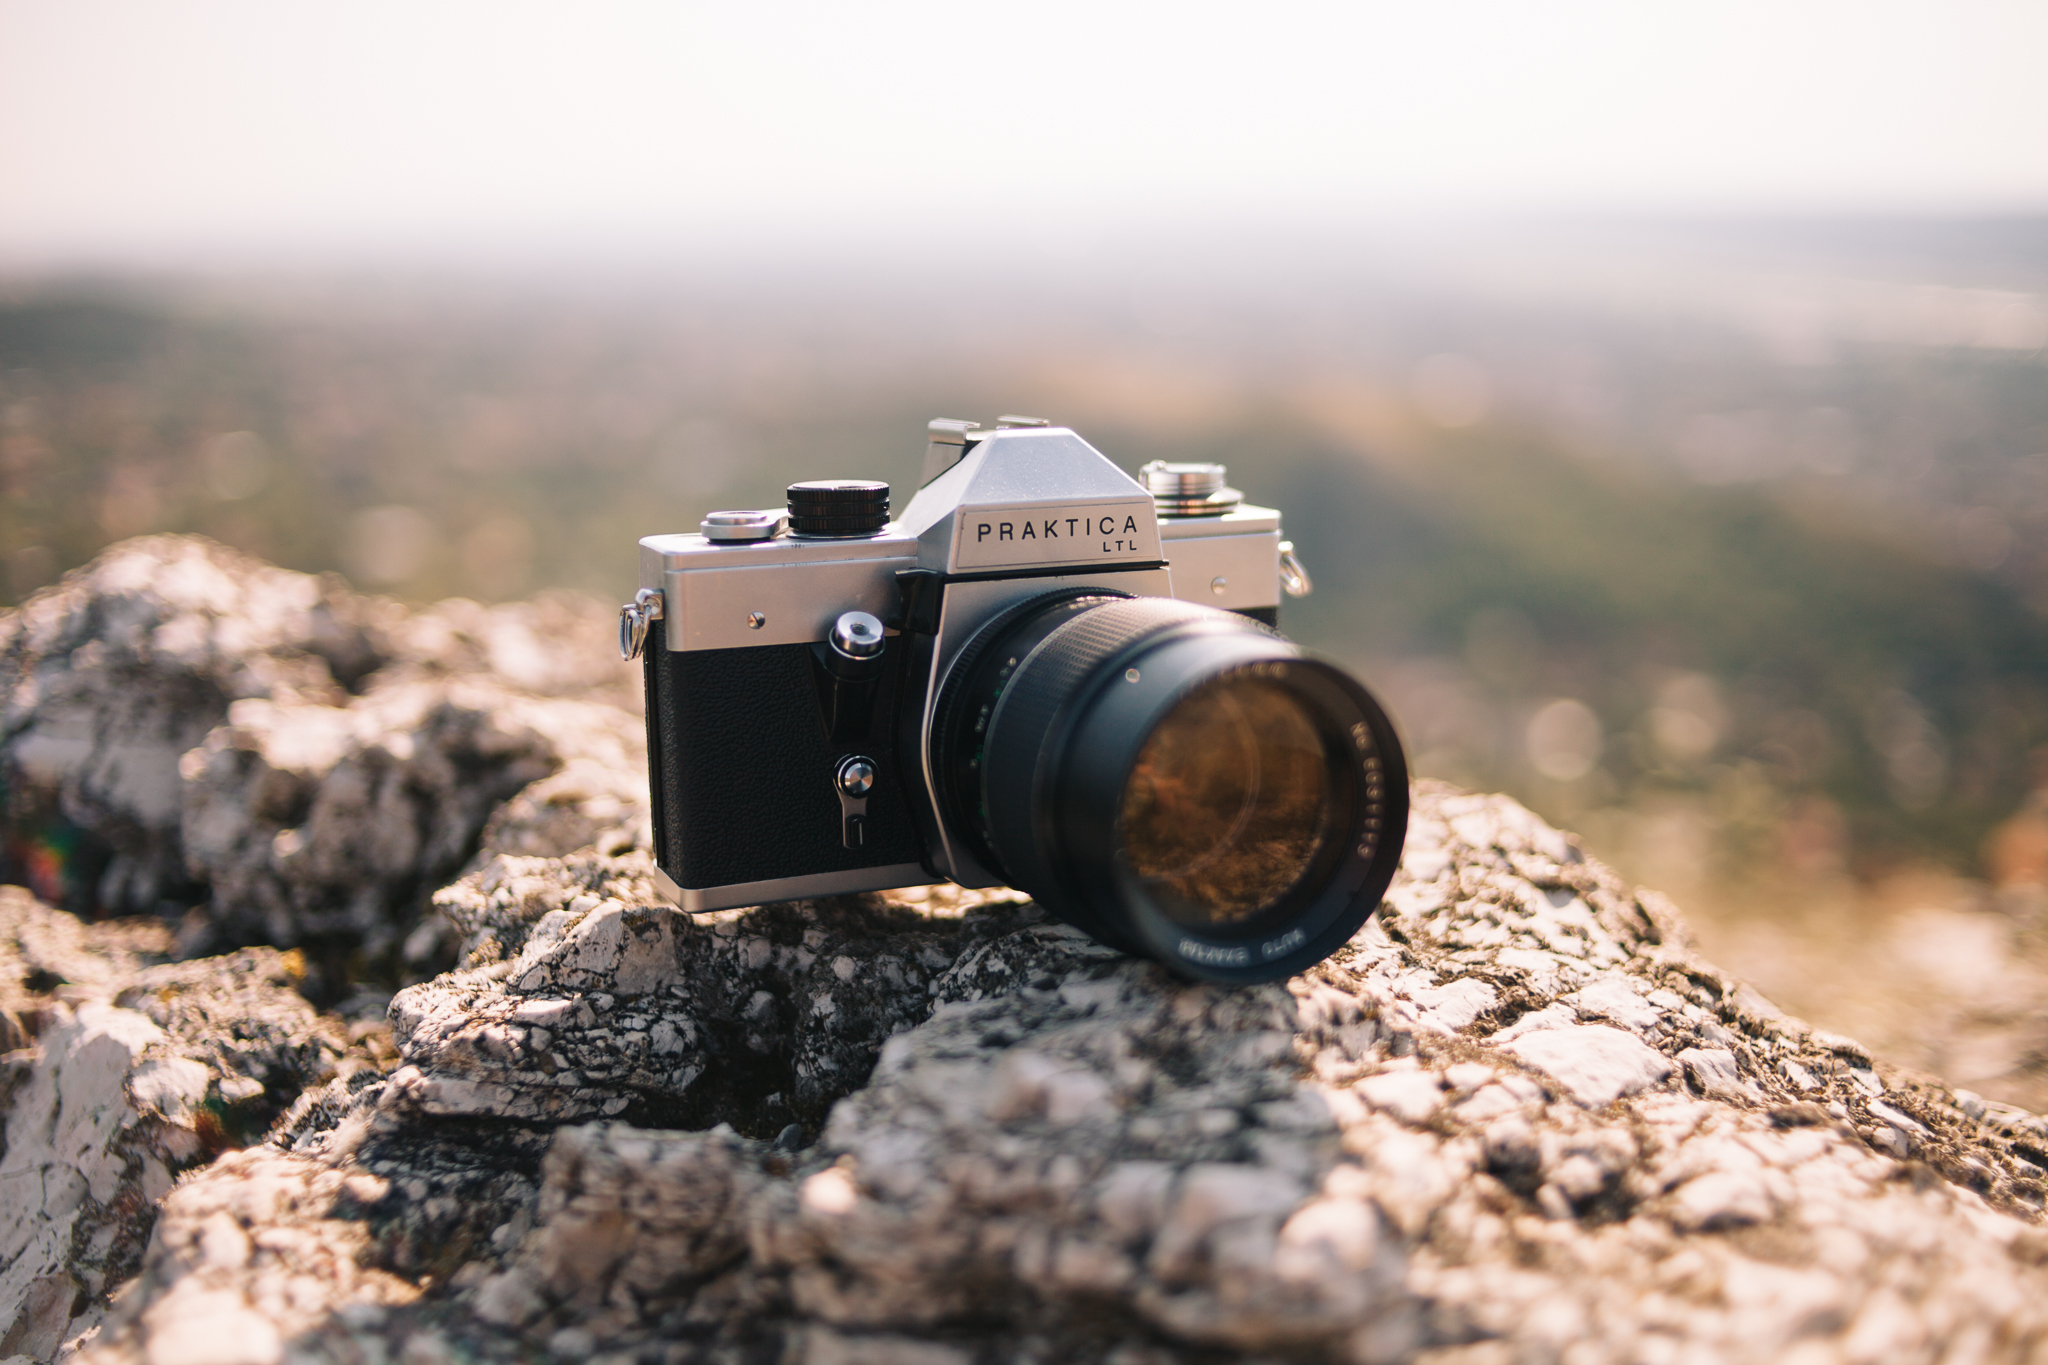 My current favorite film camera in the collection: the Praktica LTL